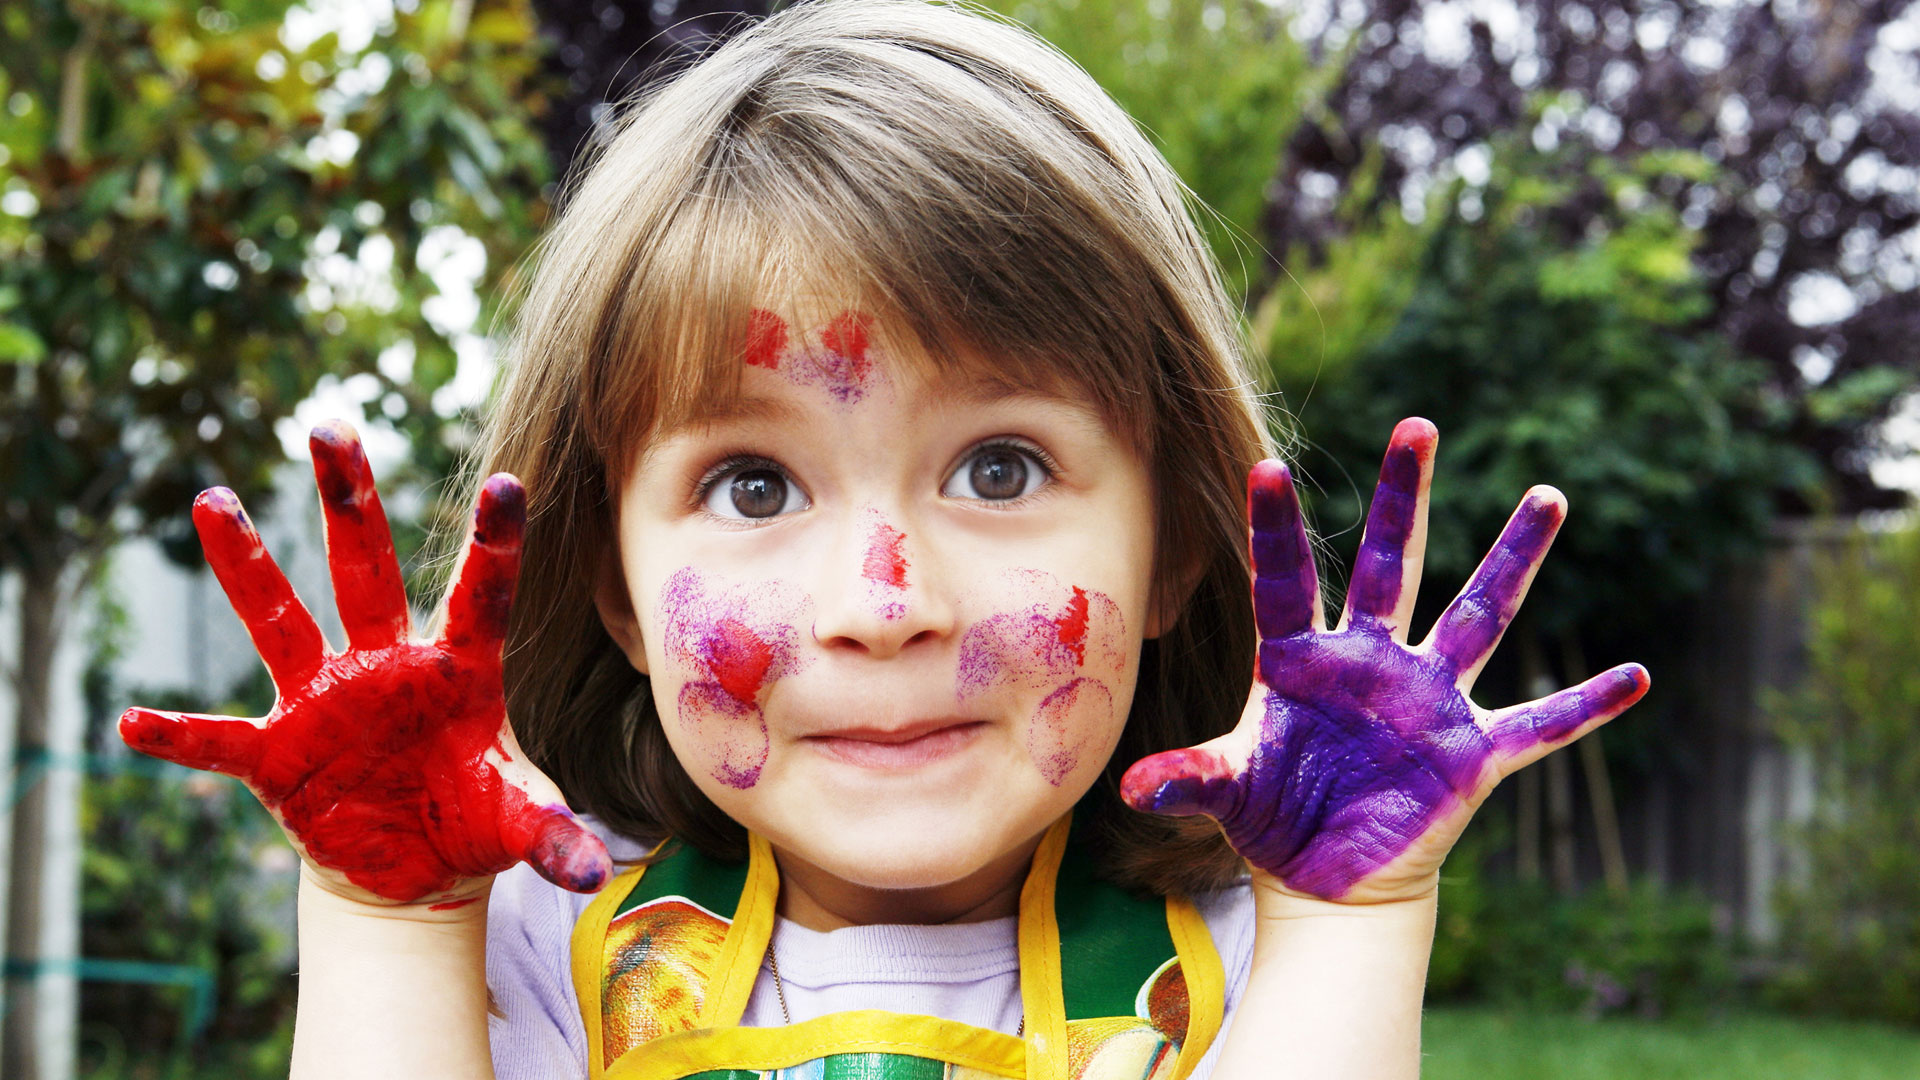 Little girl with messy hands